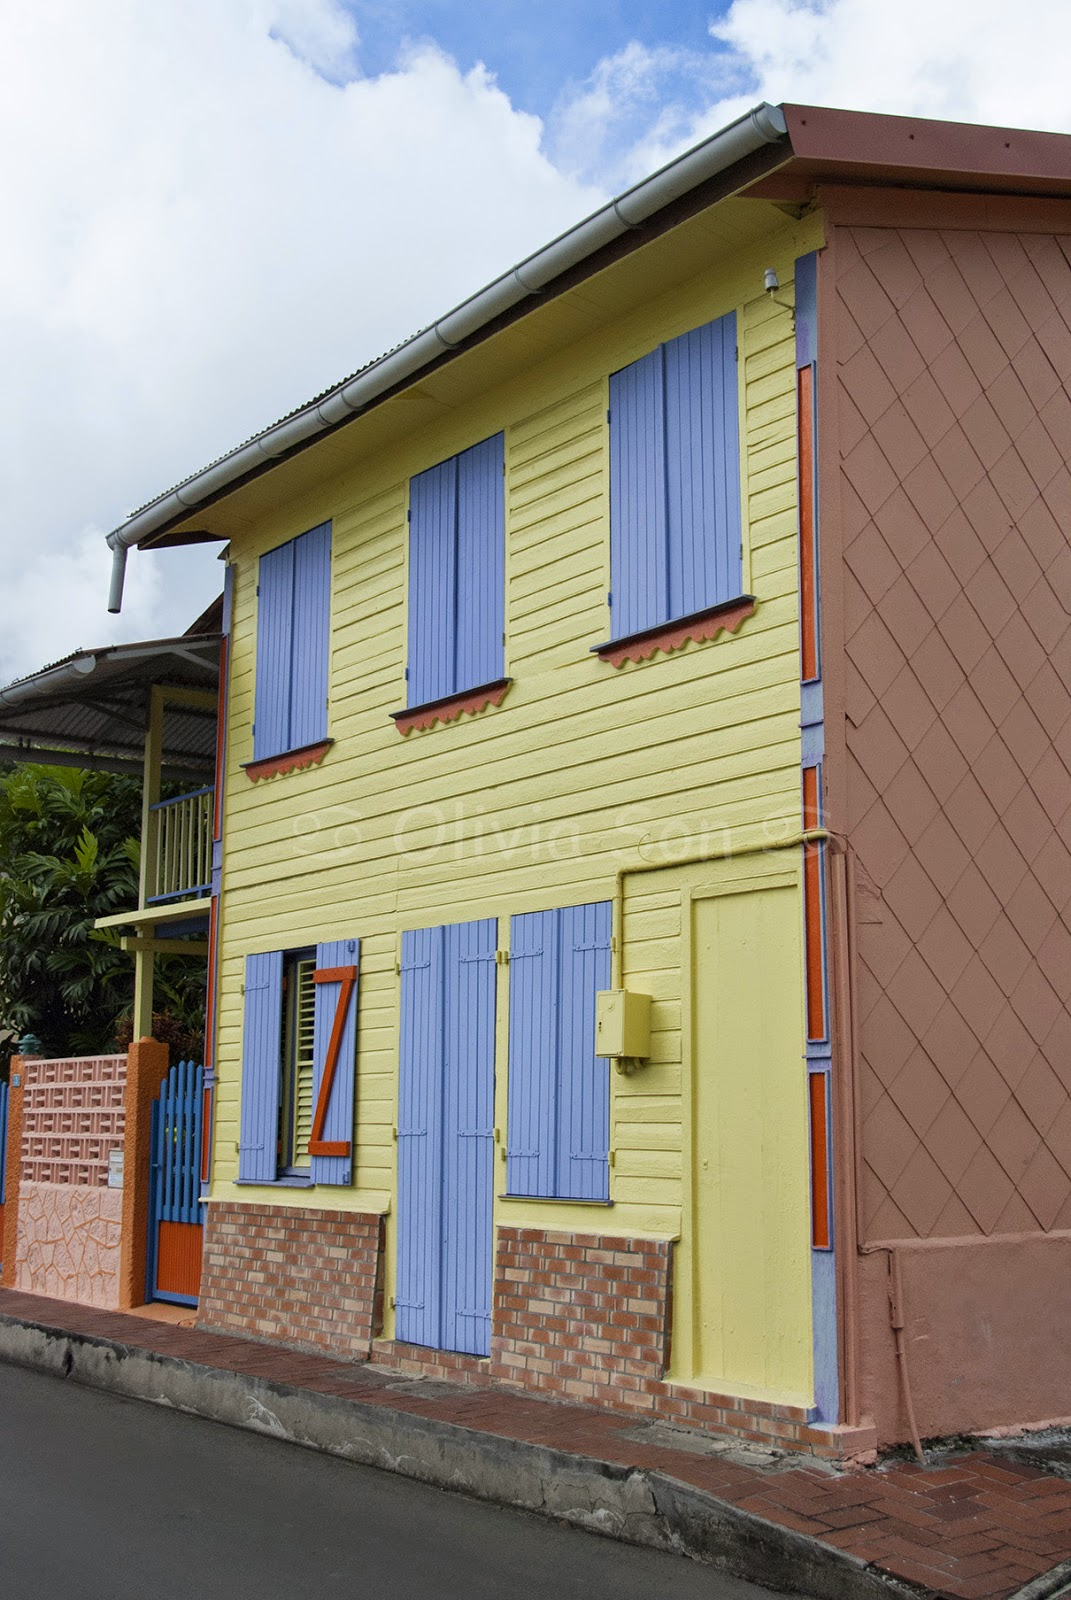 Anses d'Arlet, Martinique